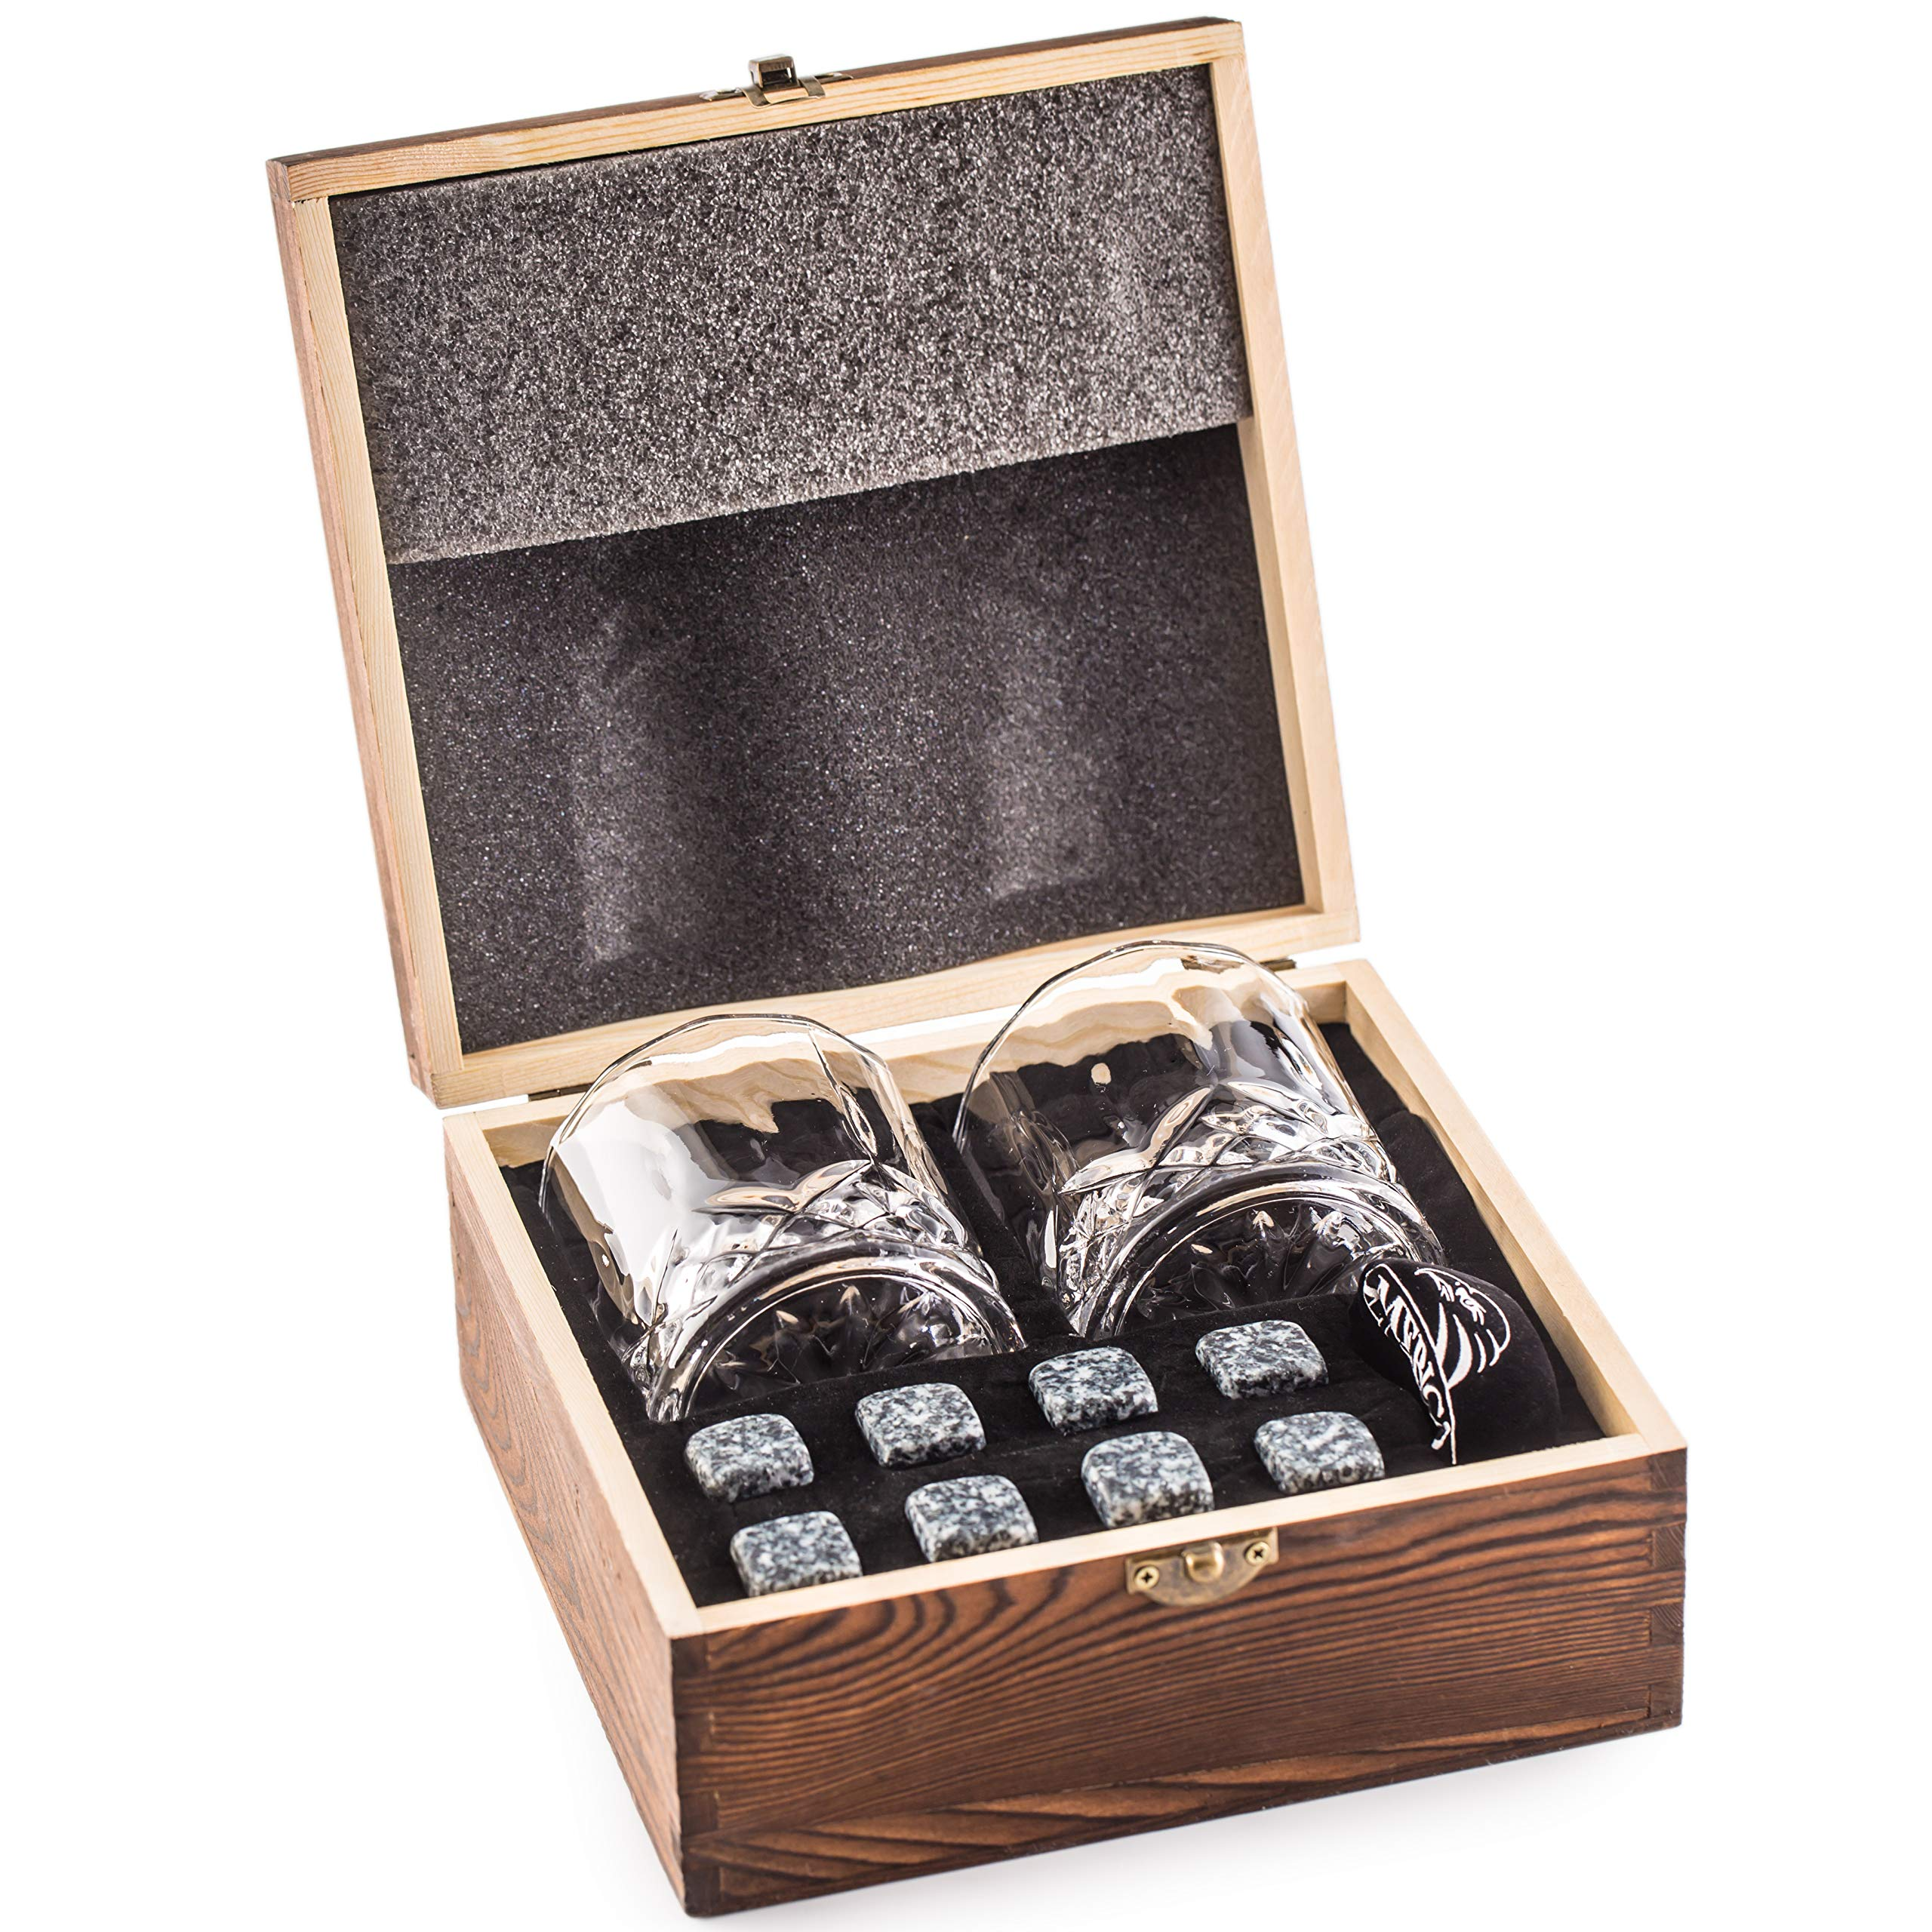 Impressive Whiskey Stones Gift Set with 2 Glasses - Be Different When Choosing a Gift - Luxury Handmade Box with 8 Granite Whisky Rocks & Velvet Bag - Ice Cubes Reusable - Best Man Gift by Amerigo